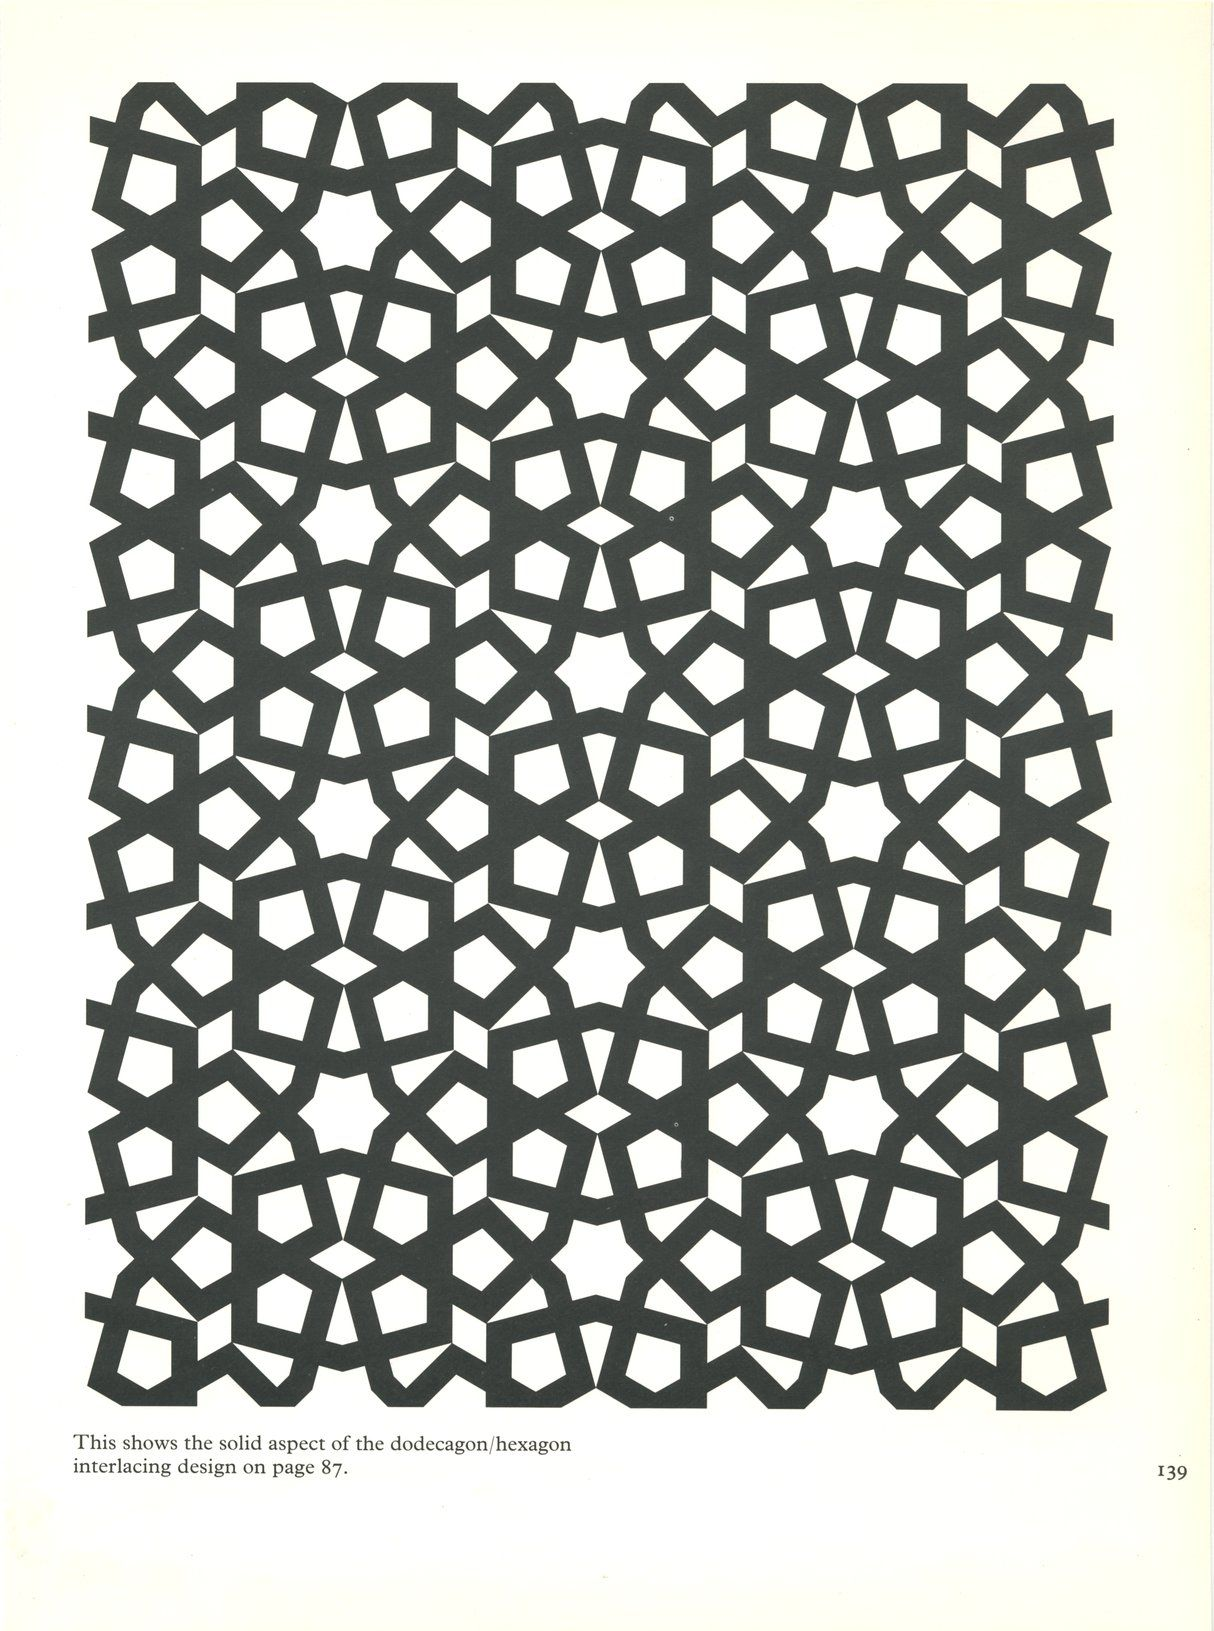 islamic pattern | patterns | Pinterest | Islamic patterns ...